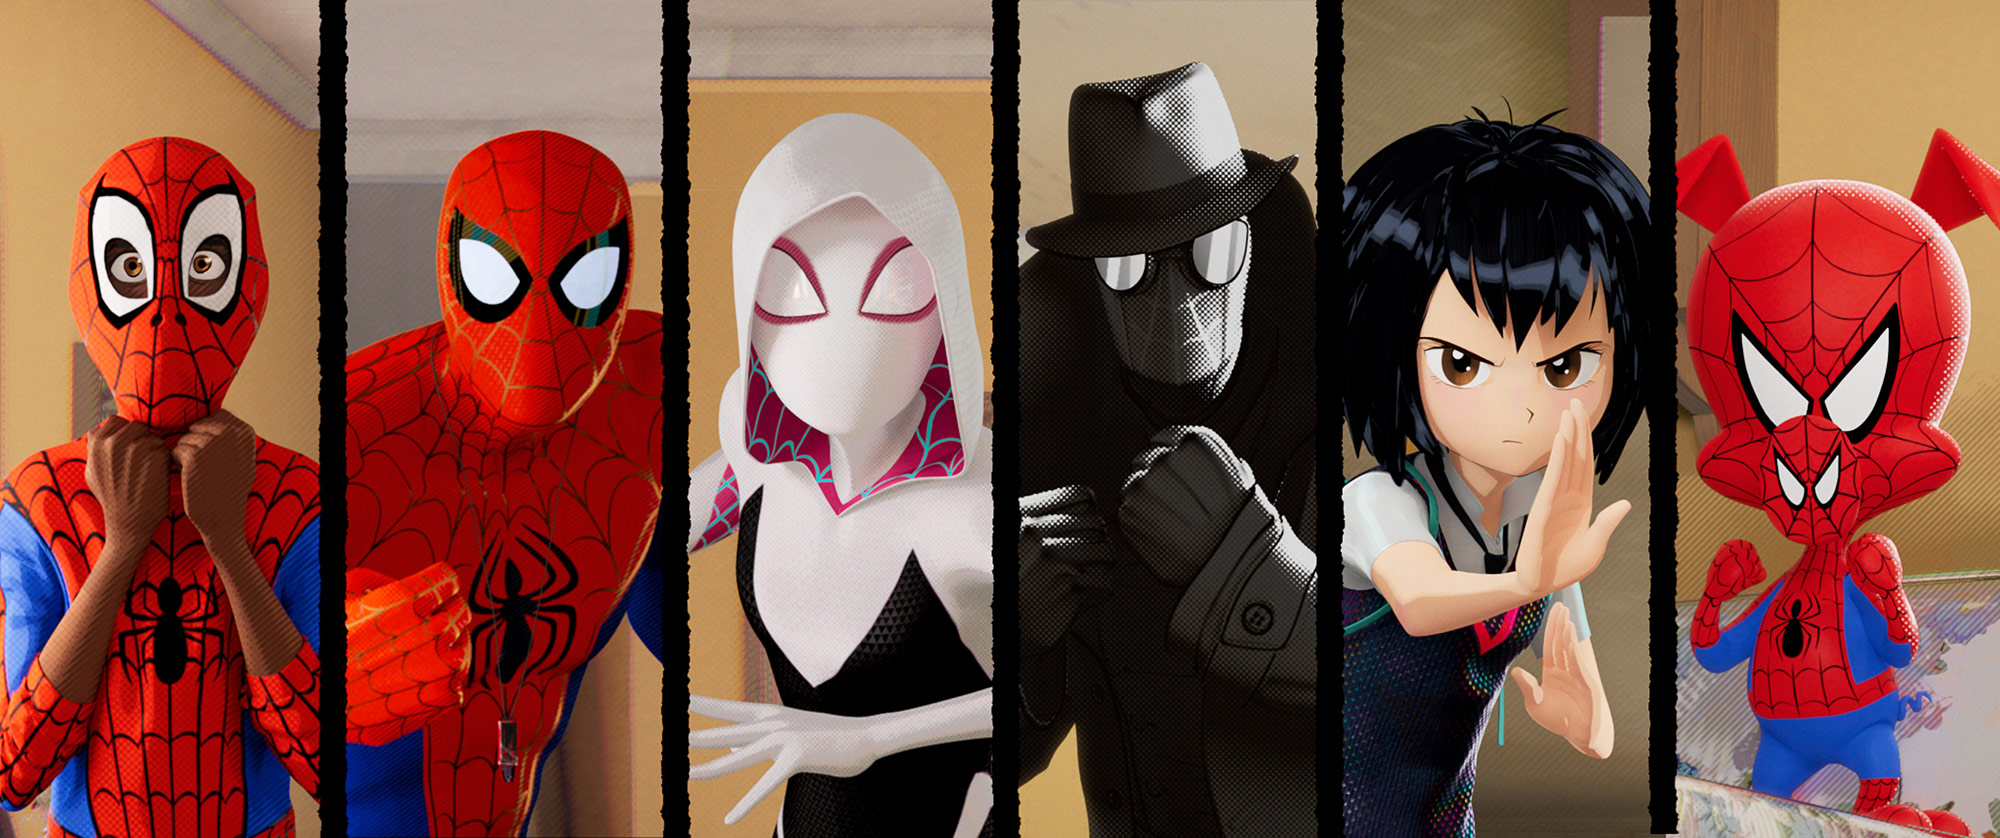 spider-man: into the spider-verse este un film complet nou, care combina animatia pe calculator cu desenele de mana si care arata cum nu s-a mai vazut in niciun film din trecut (video) Spider-Man: Into the Spider-Verse este un film complet nou, care combina animatia pe calculator cu desenele de mana si care arata cum nu s-a mai vazut in niciun film de animatie (VIDEO) thompson 09